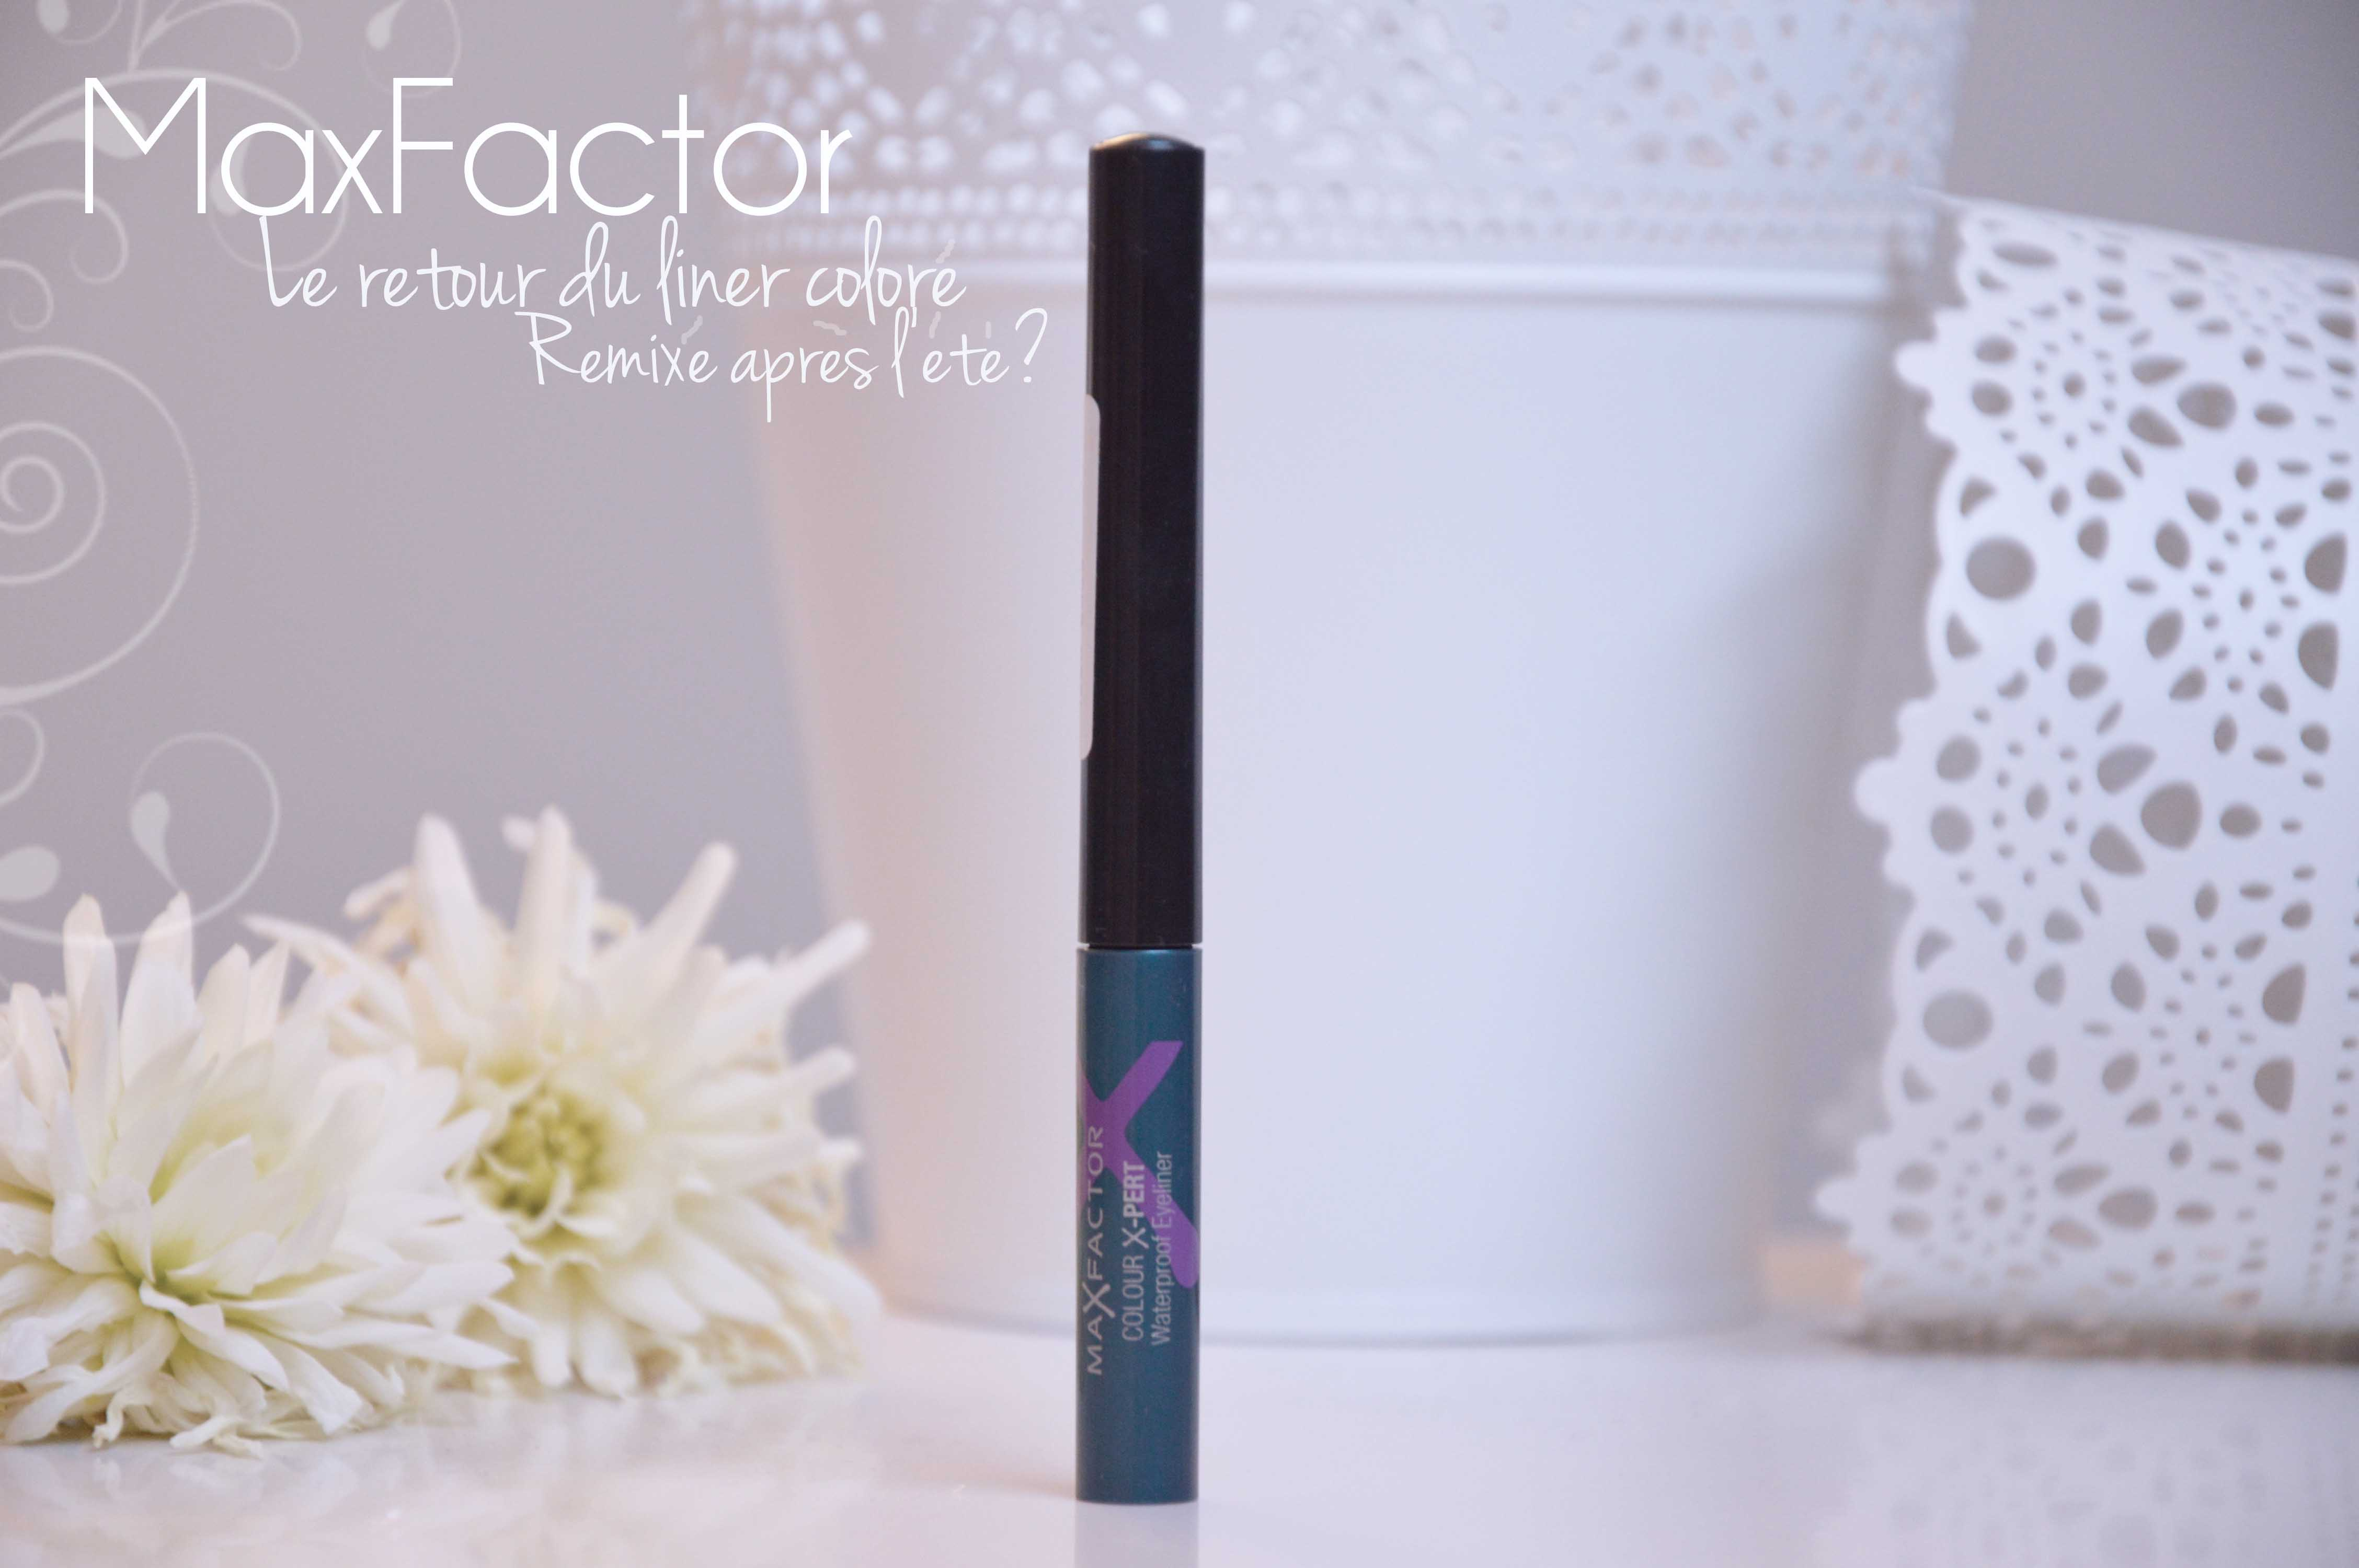 ALITTLEB_BLOG_BEAUTE_MAXFACTOR_LINER_COLORE_METALLICBLUE